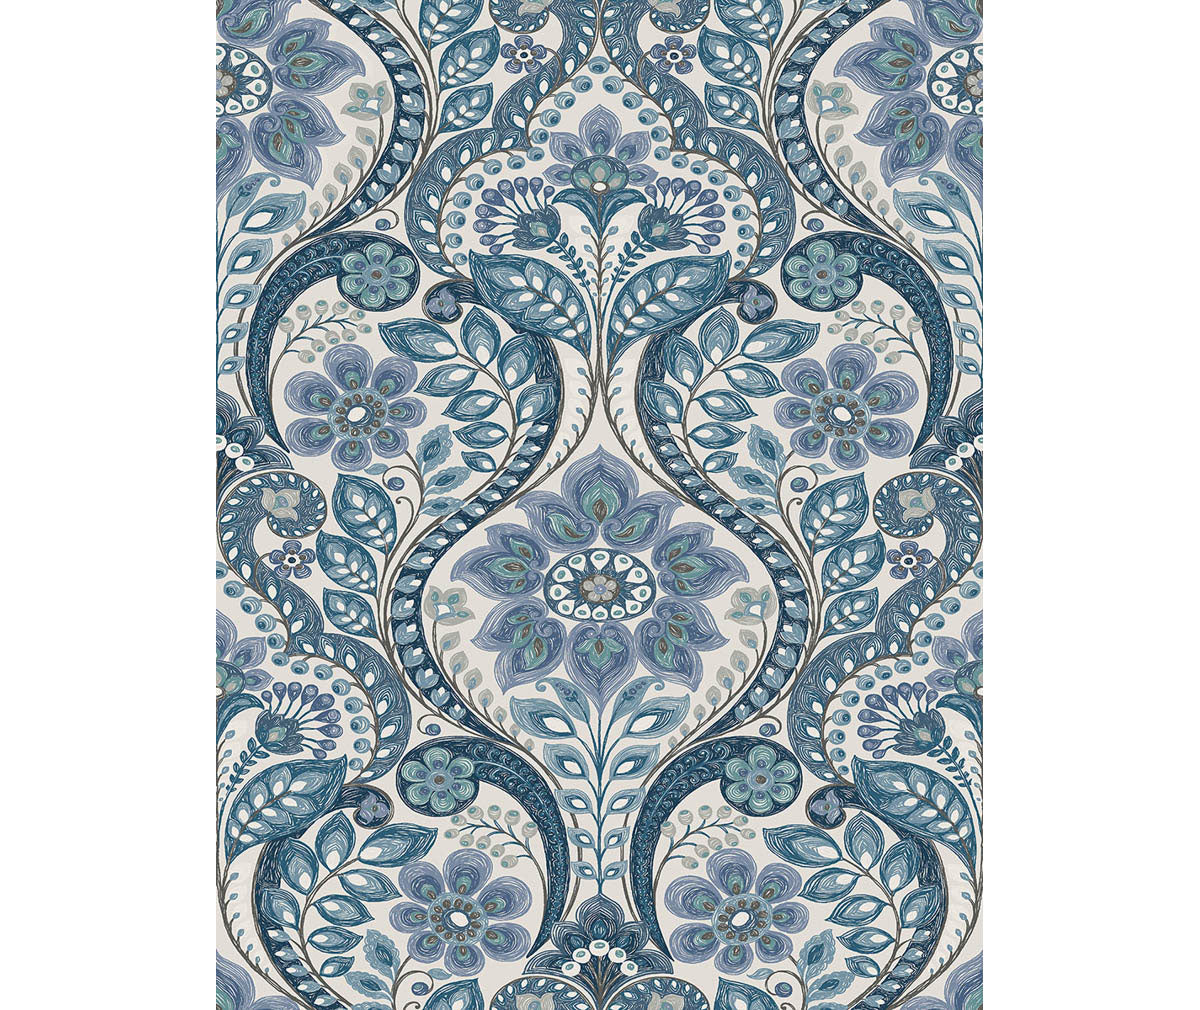 Night Bloom Blue Damask Wallpaper Available At Barrydowne Paint